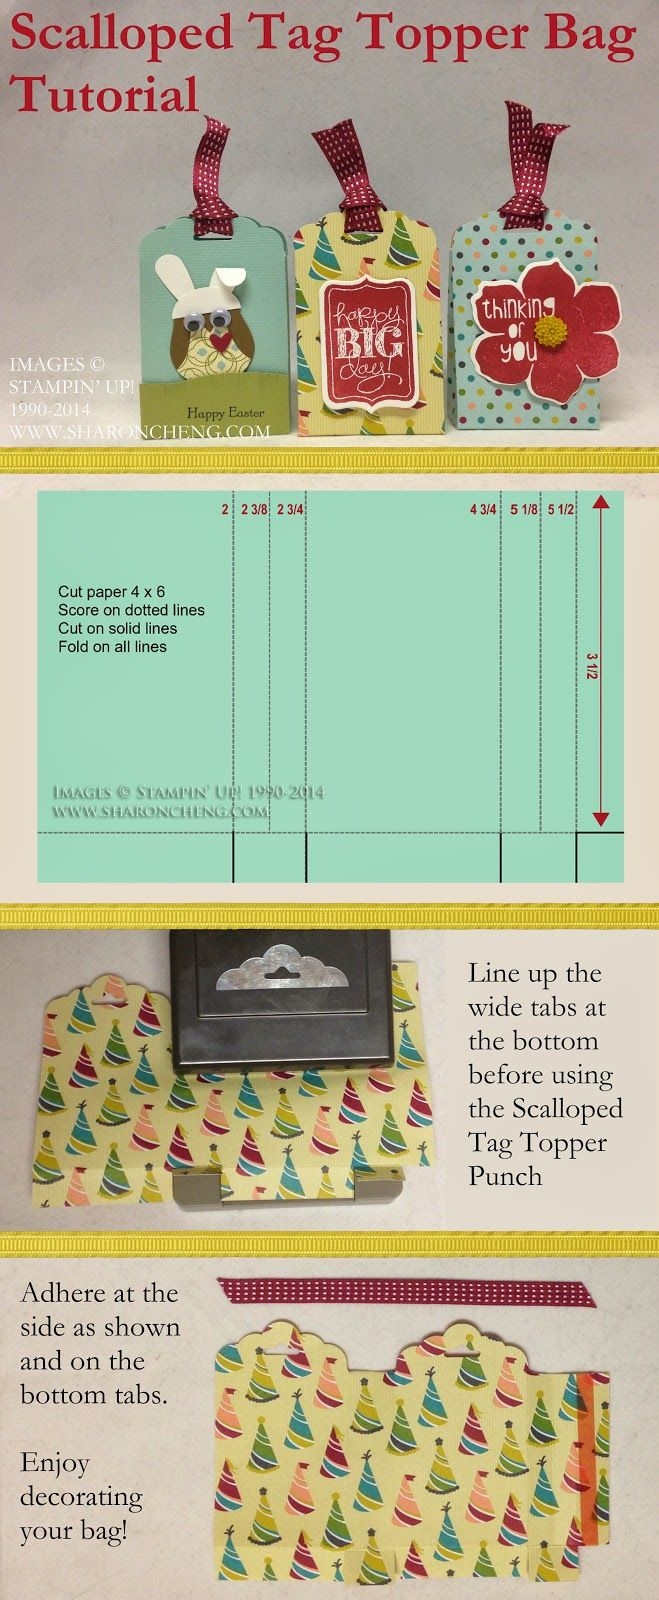 Scalloped Tag Topper Bag Tutorial and Video